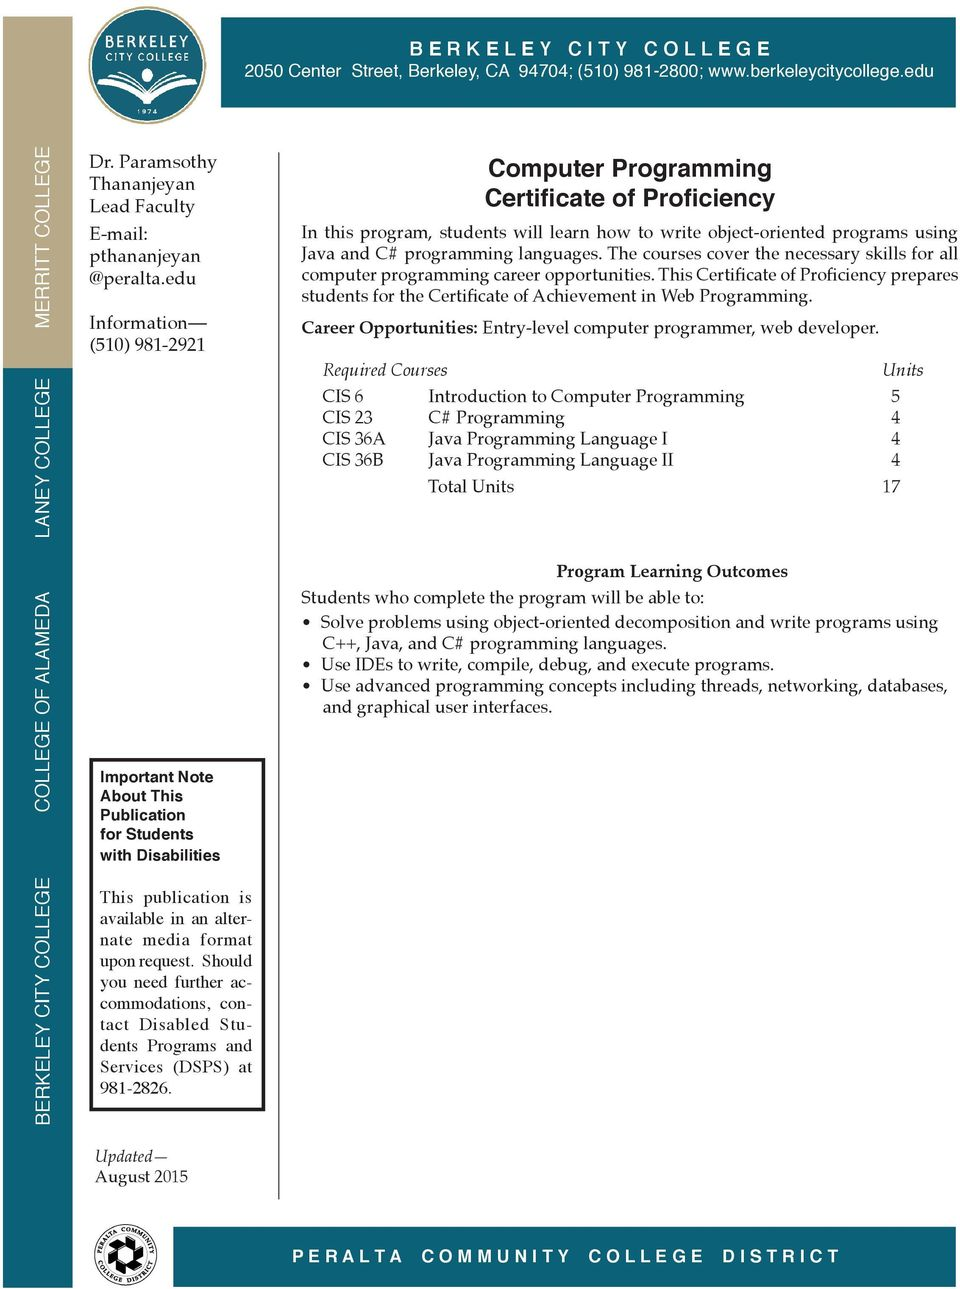 This Certificate of Proficiency prepares students for the Certificate of Achievement in Web Programming. Career Opportunities: Entry-level computer programmer, web developer.